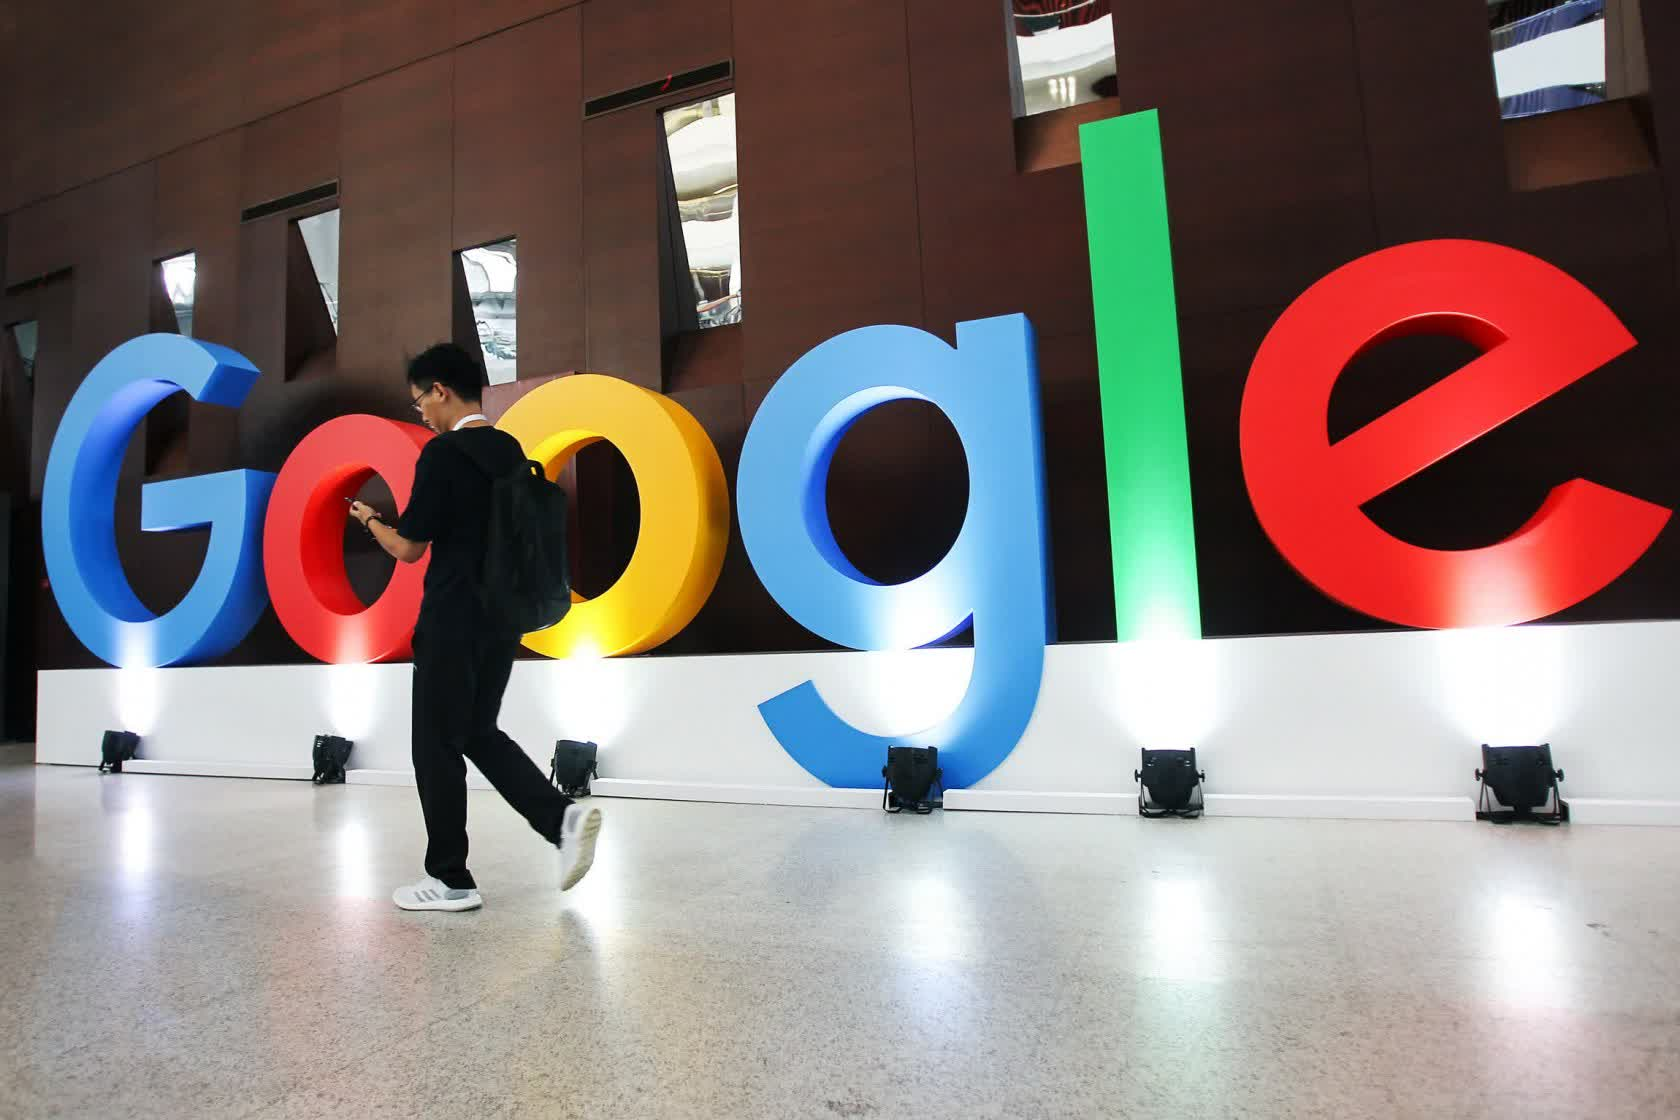 Google is using artificial intelligence to make information more useful